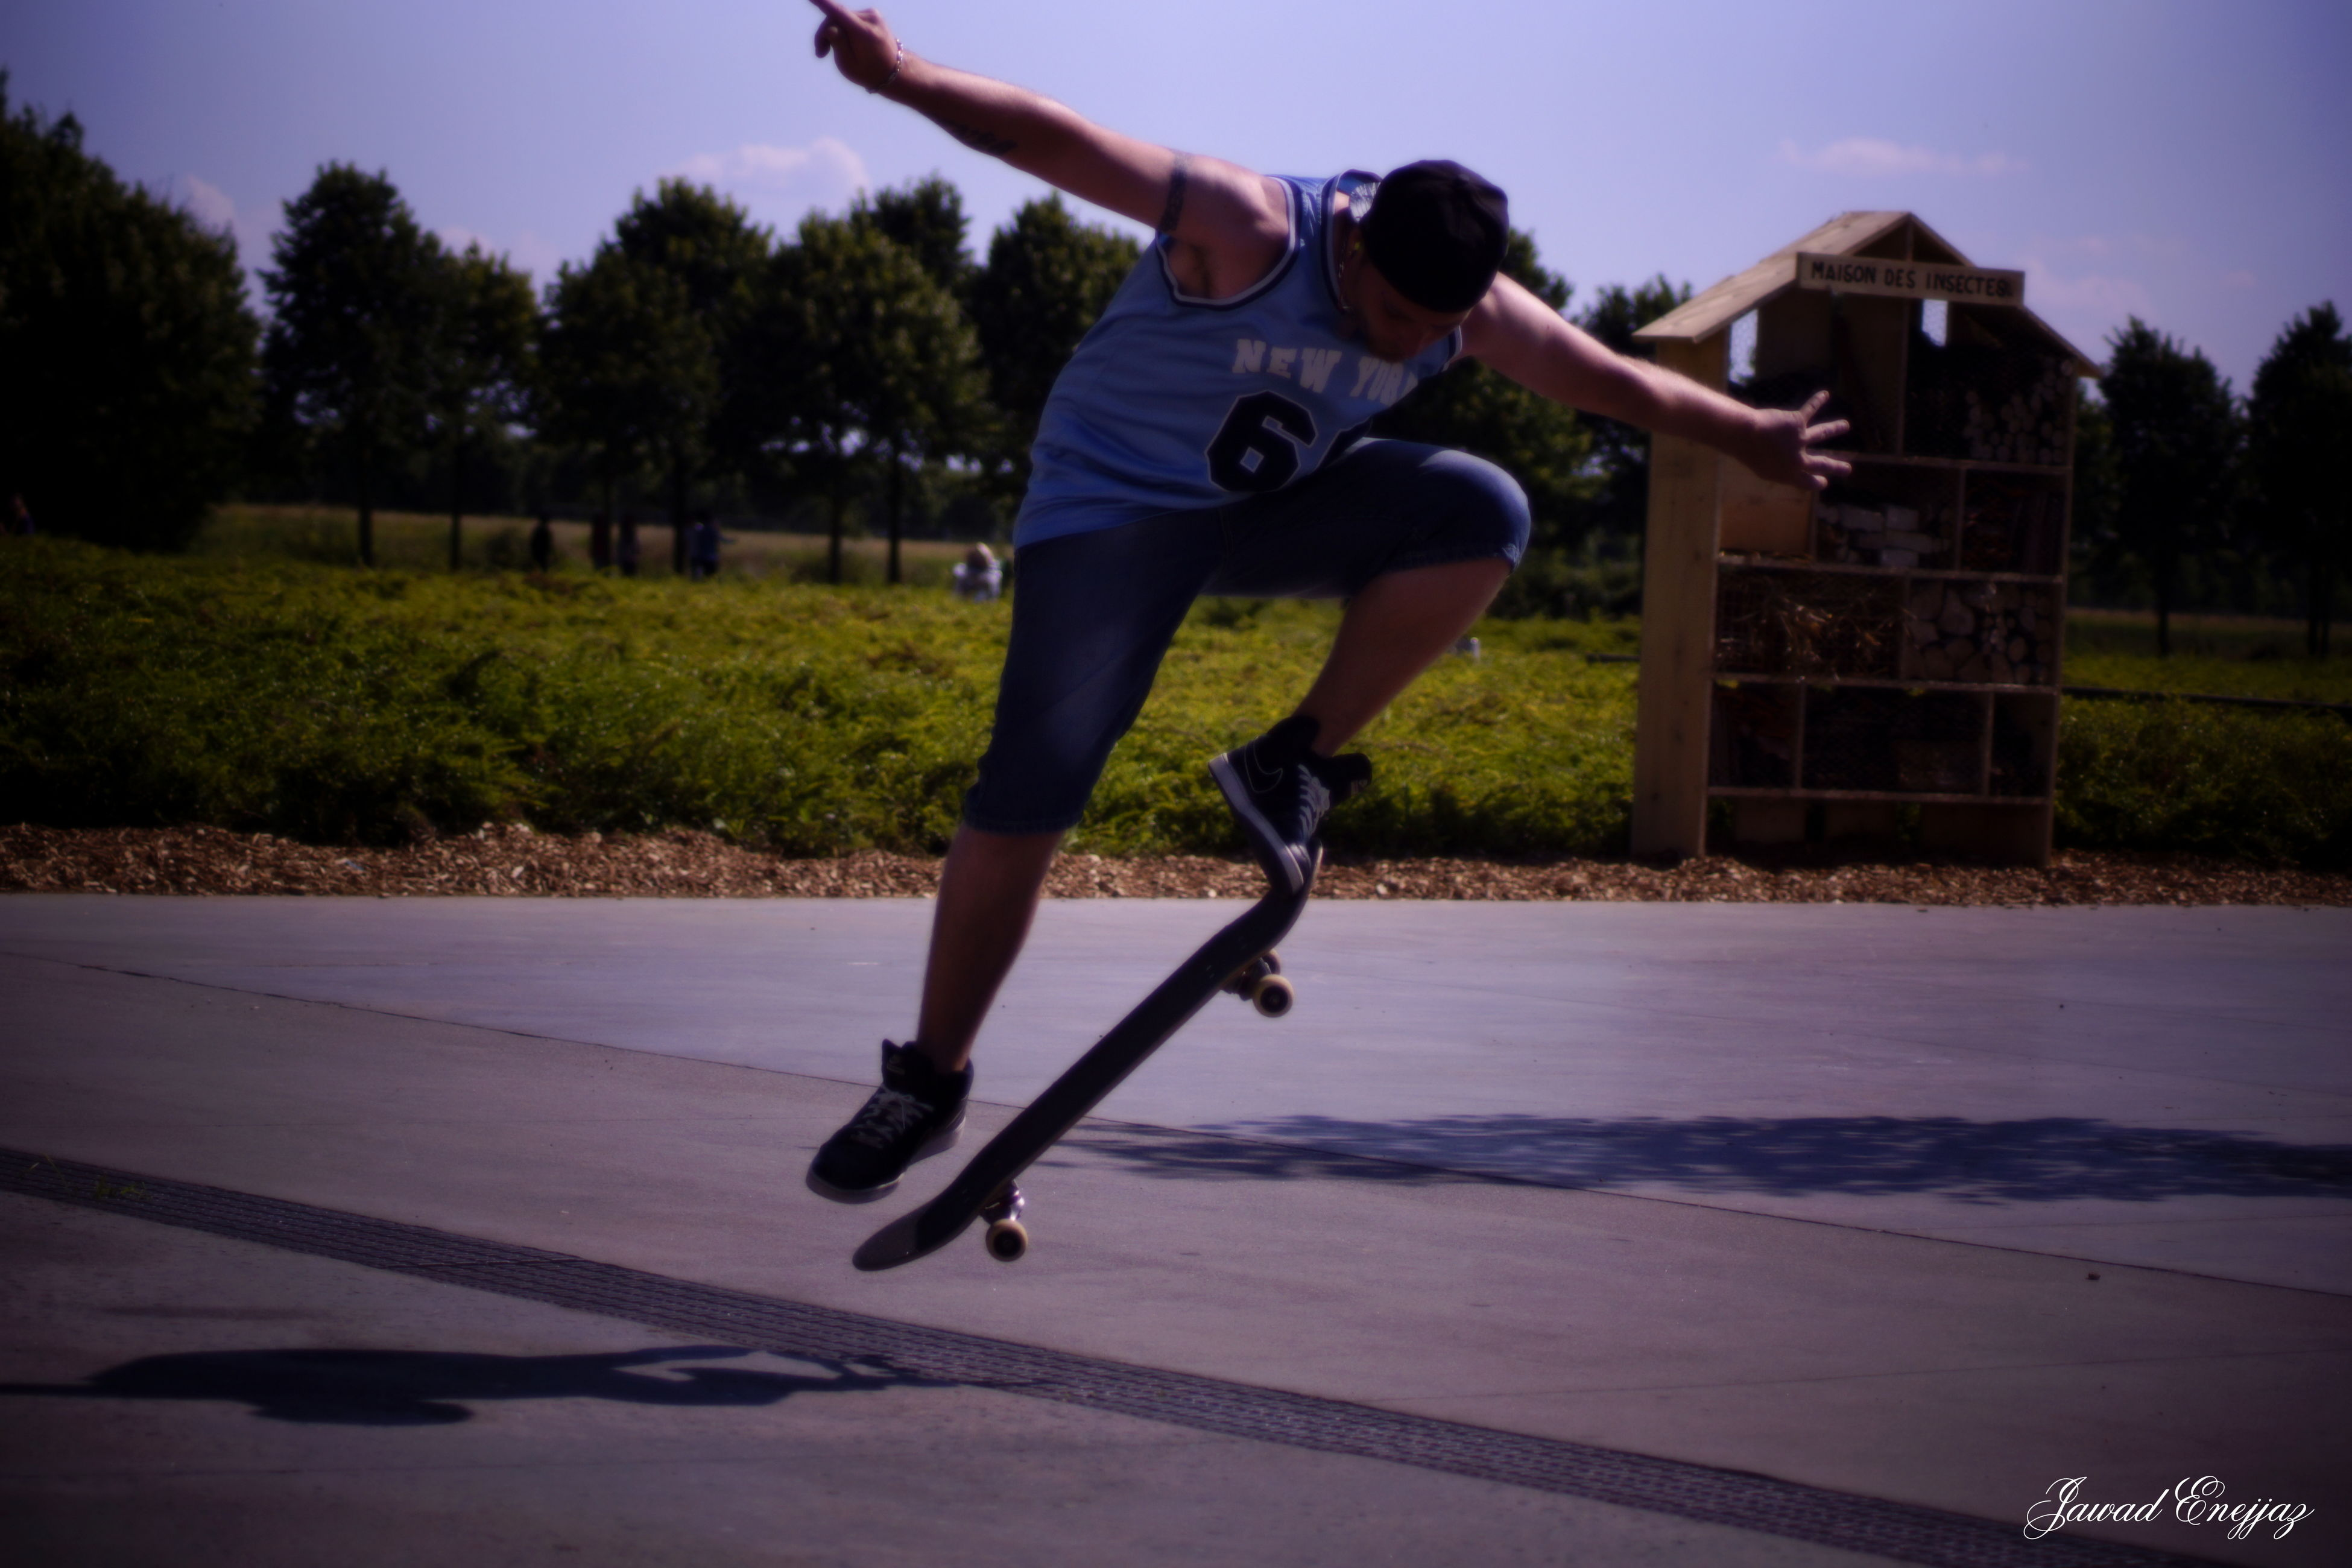 full length, lifestyles, leisure activity, mid-air, enjoyment, fun, jumping, childhood, casual clothing, person, sport, water, playing, boys, motion, vitality, young adult, carefree